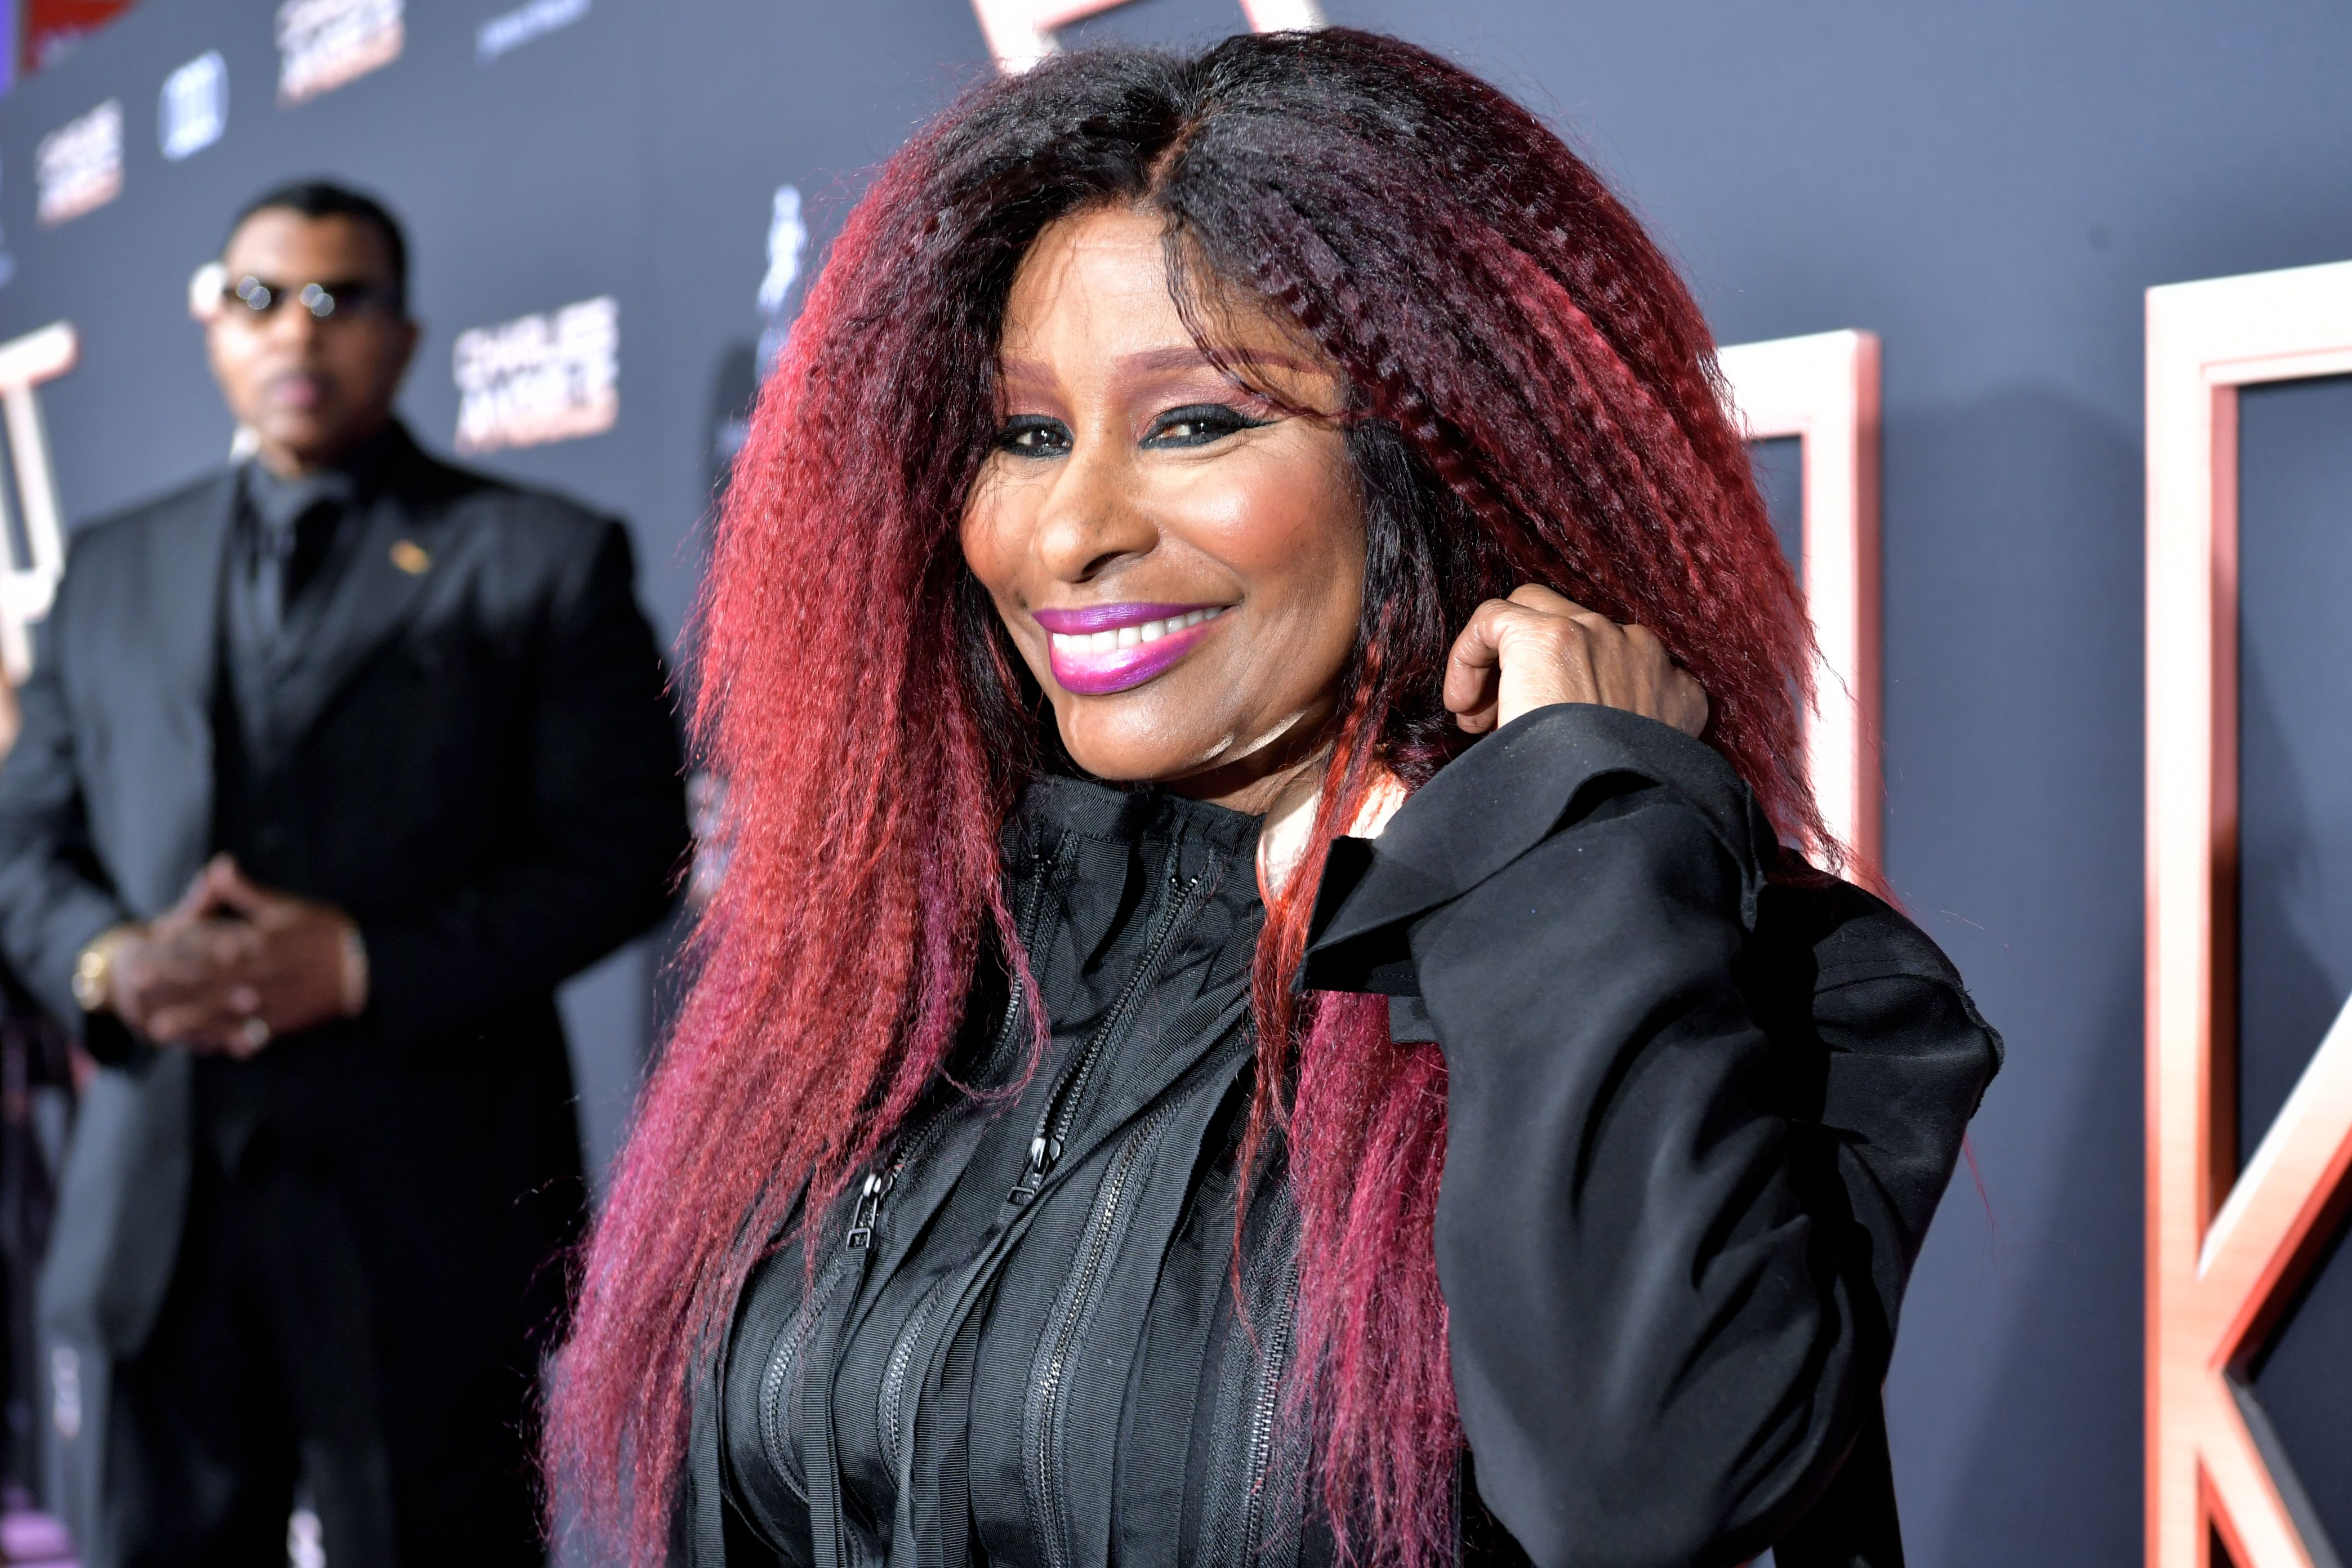 """Chaka Khan at the premiere of""""Charlie's Angel's"""" in 2019 in Los Angeles 